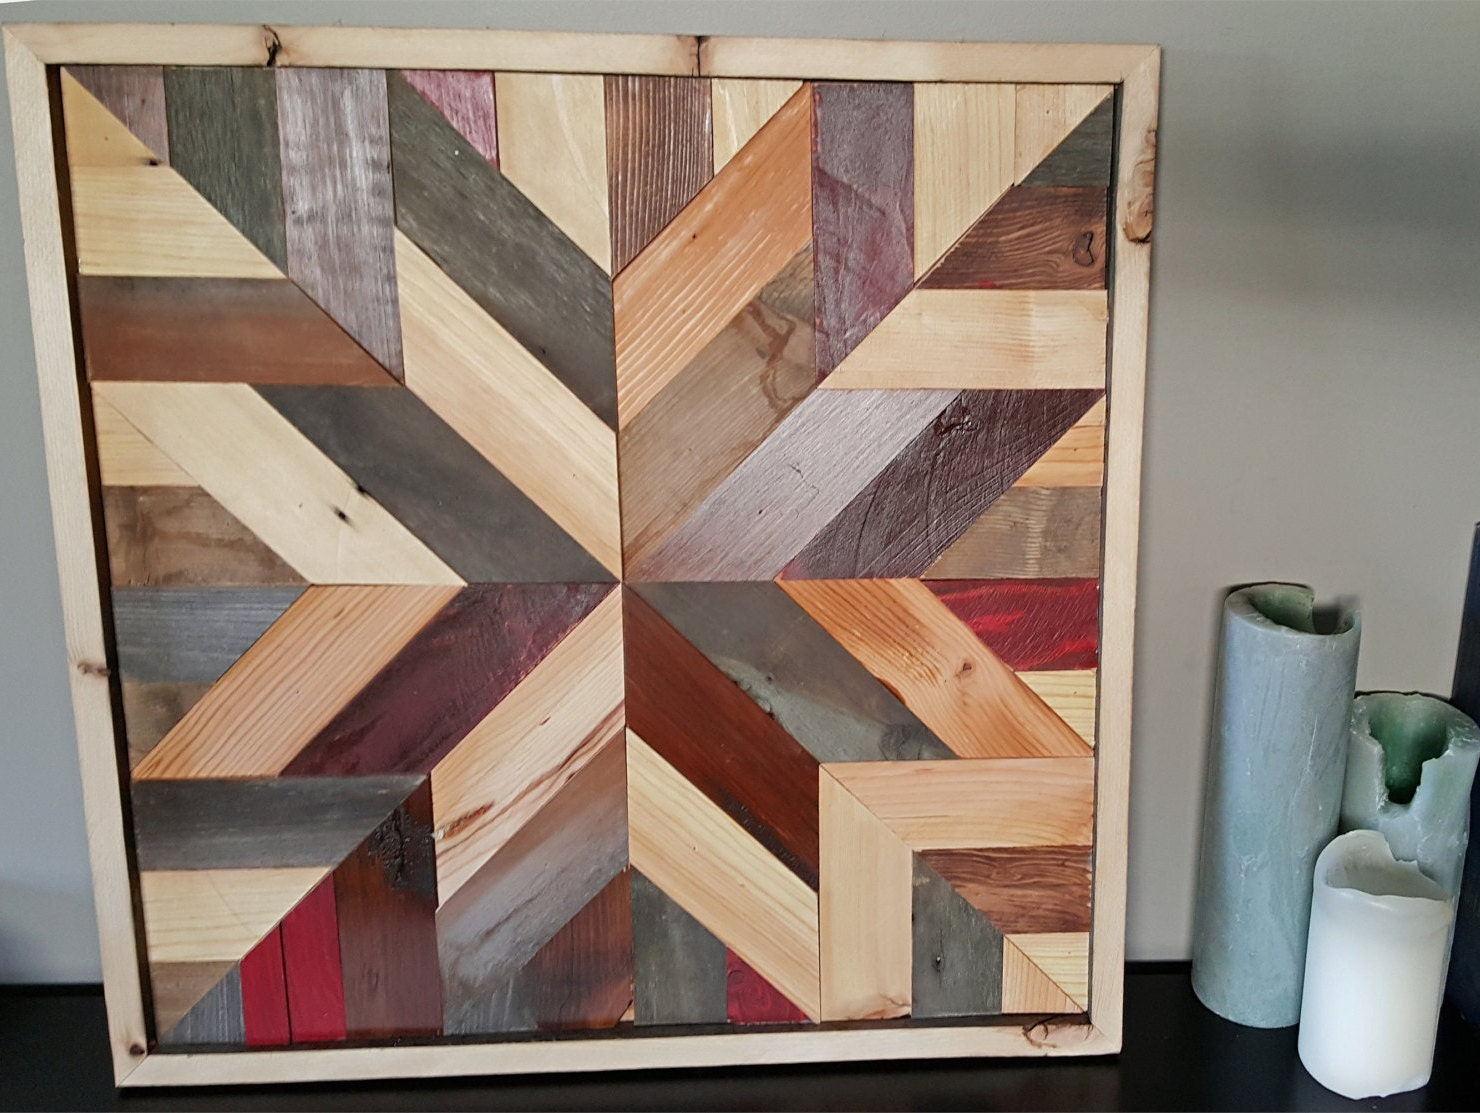 Star Pattern Barn Quilt Multiple Shades Of Stained Wood